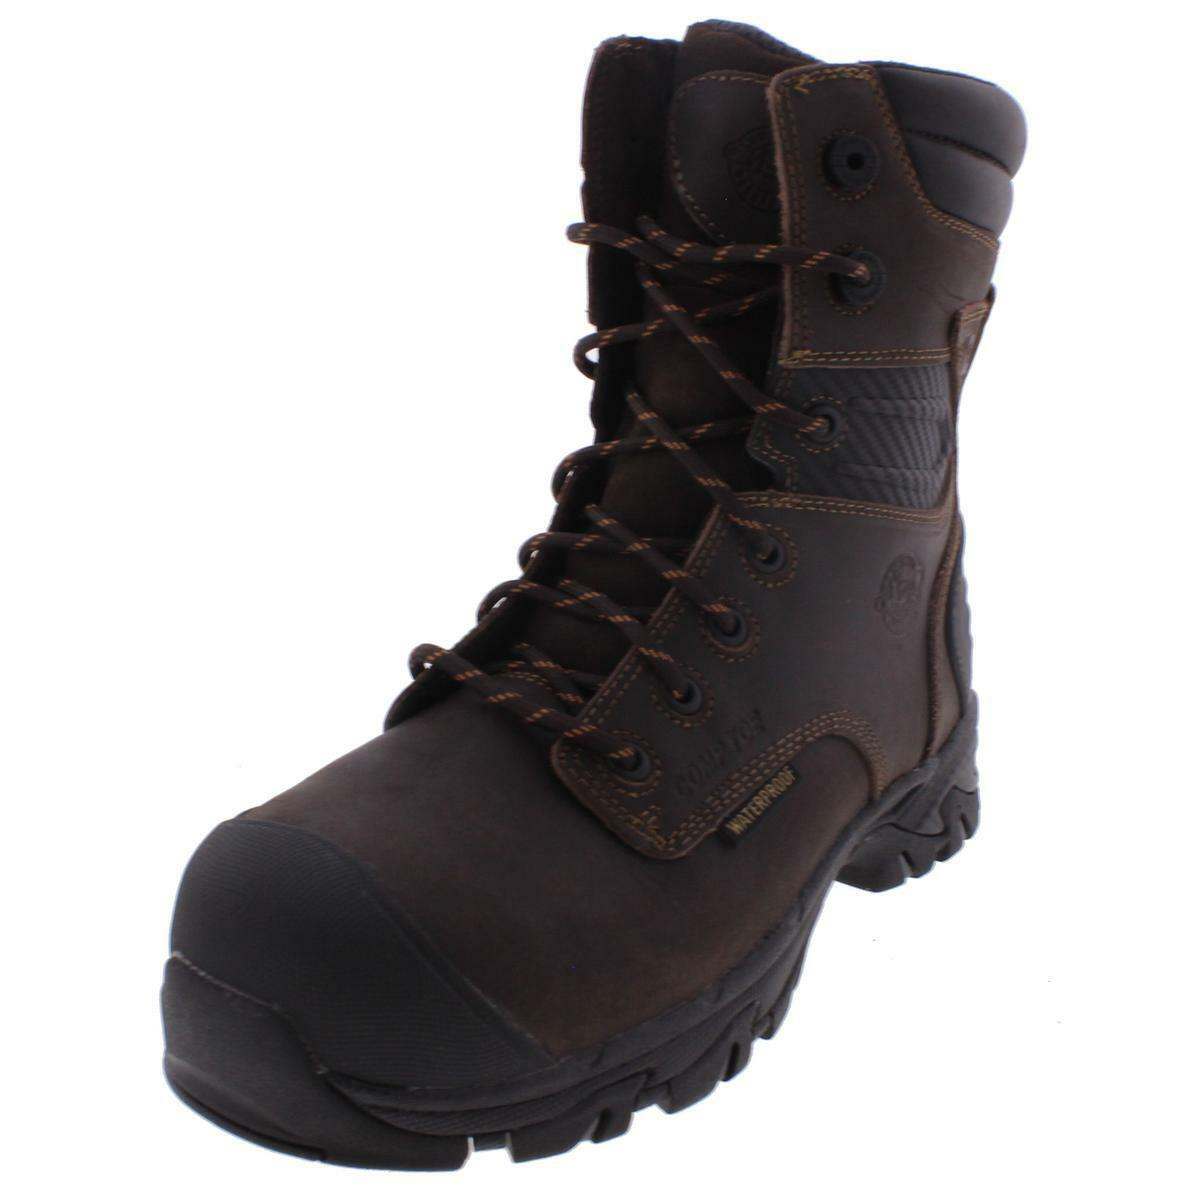 Justin Original Work Boots Boots Mens Composite Toe Work Boots Boots Shoes BHFO 2269 be63f5